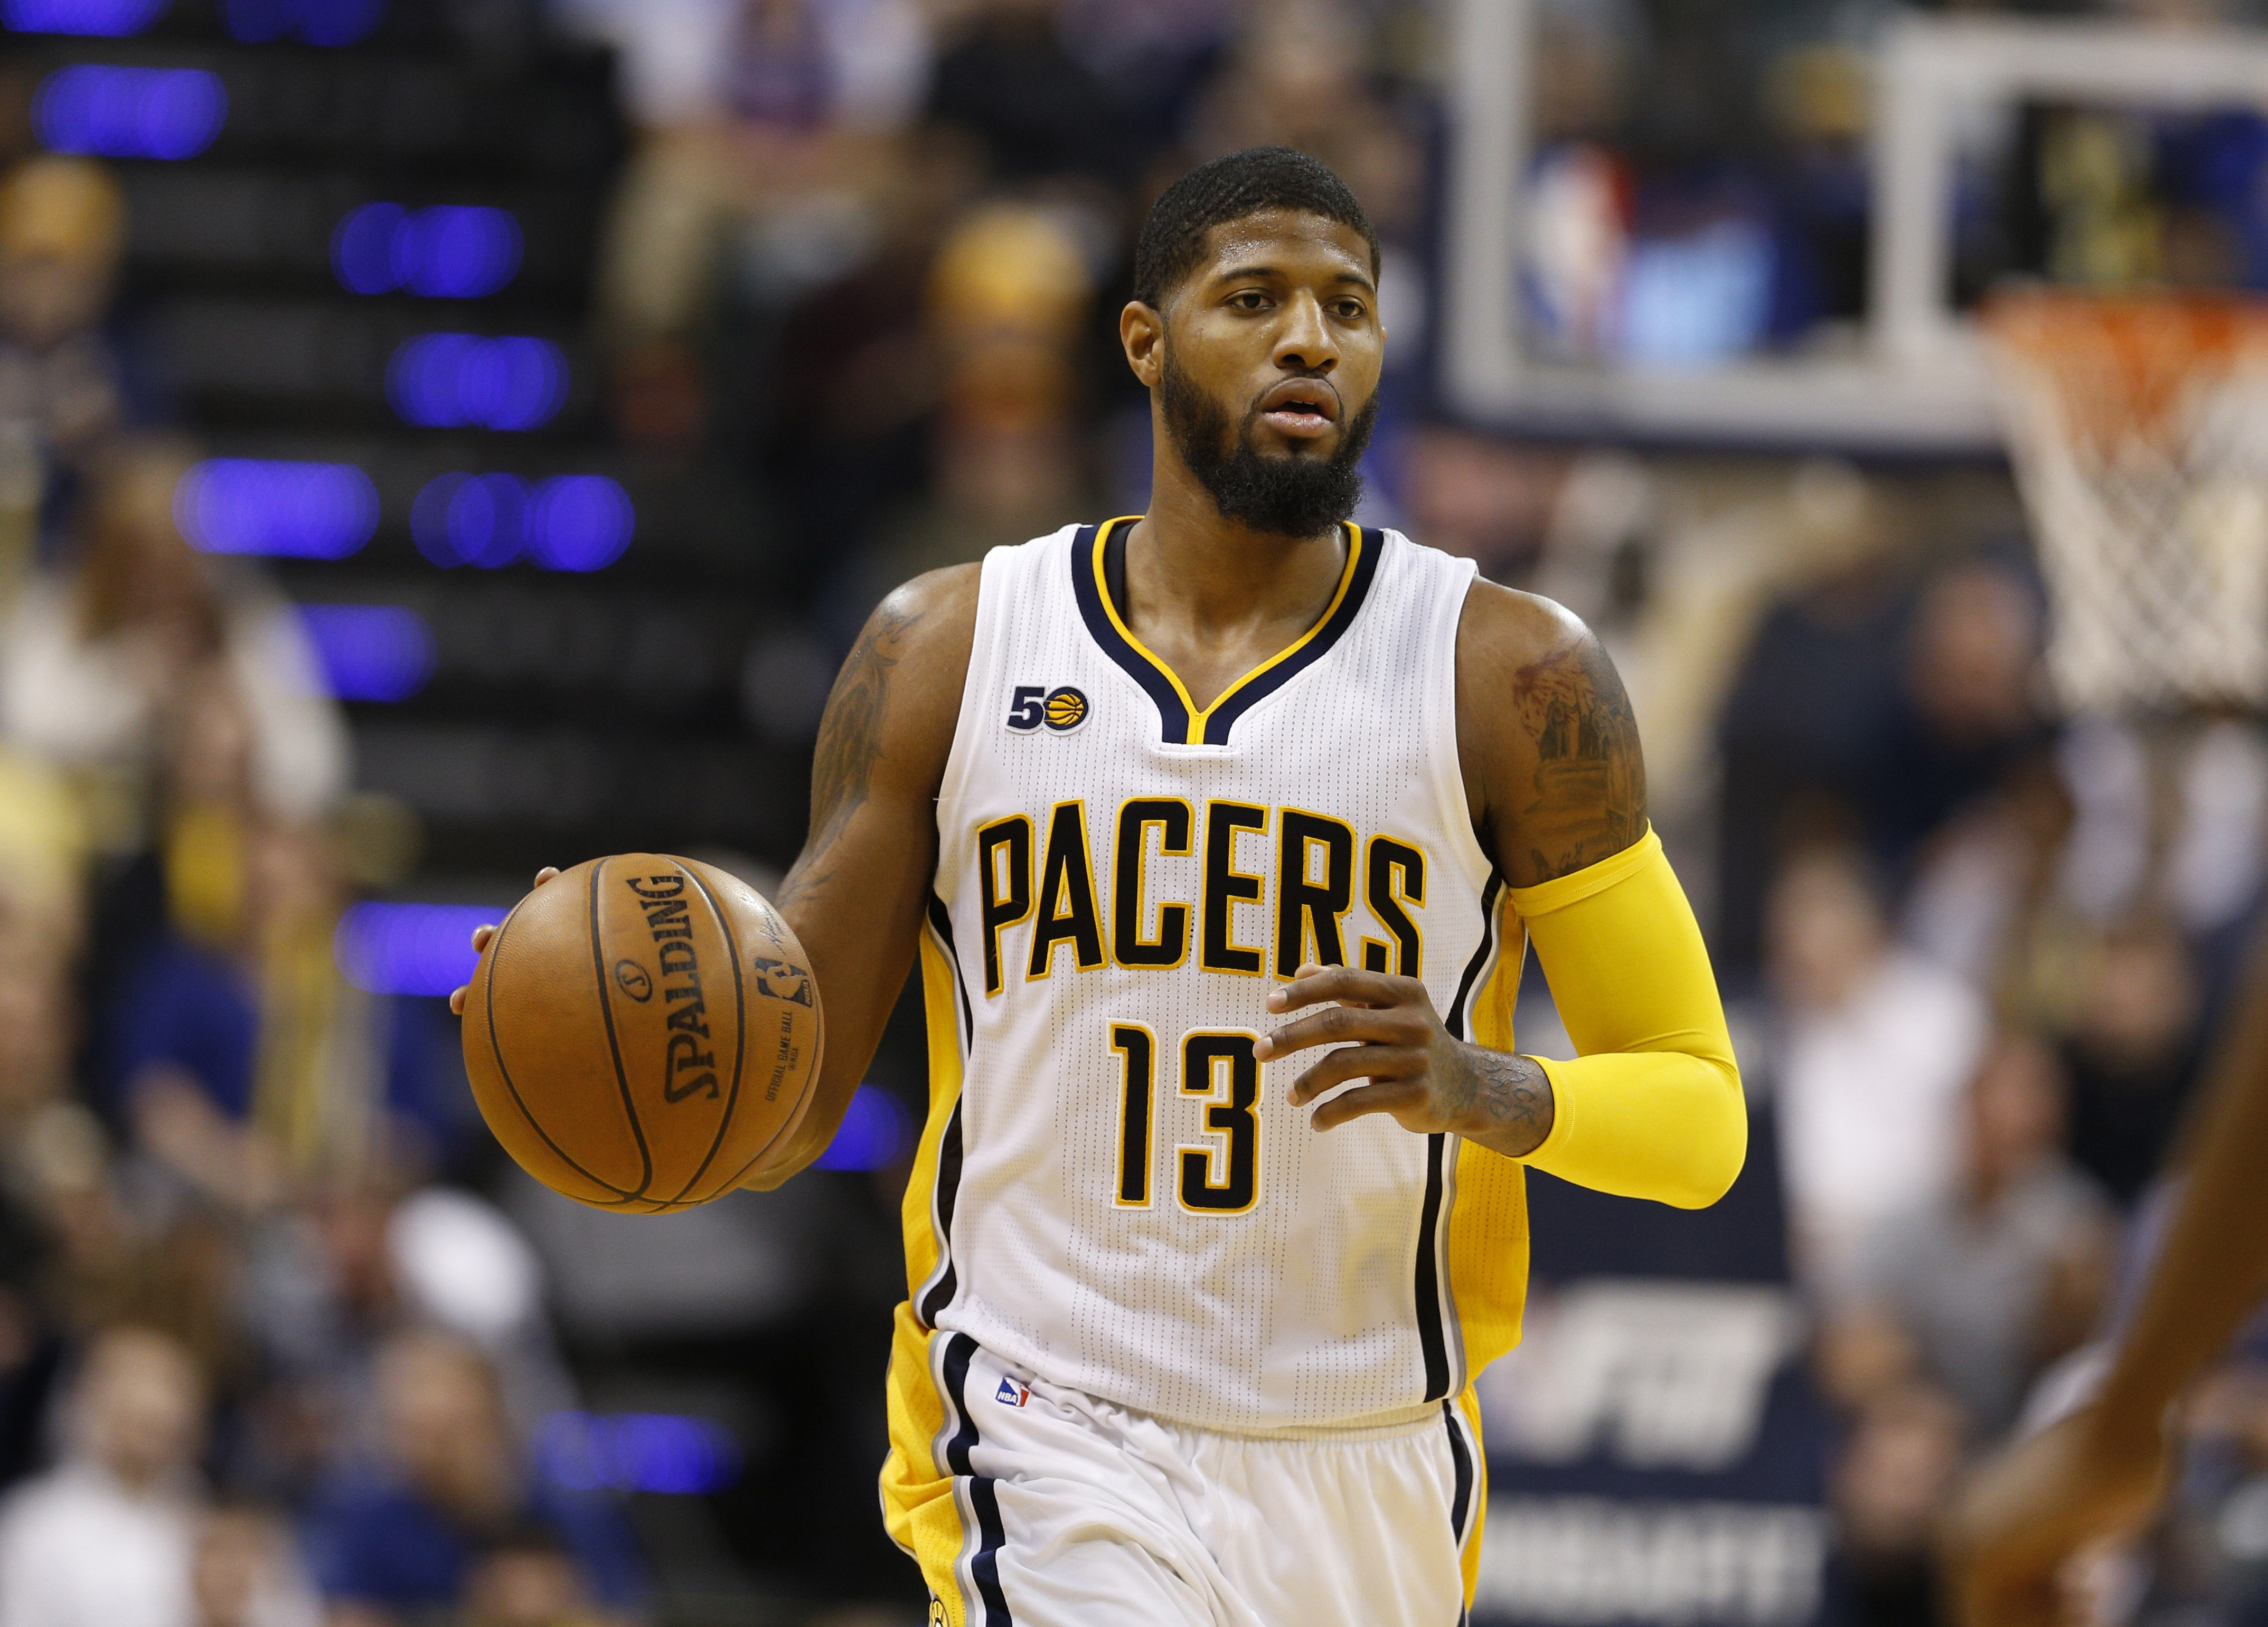 Jan 23, 2017; Indianapolis, IN, USA; Indiana Pacers forward Paul George (13) brings the ball up court against the New York Knicks at Bankers Life Fieldhouse. New York defeats Indiana 109-103. Mandatory Credit: Brian Spurlock-USA TODAY Sports